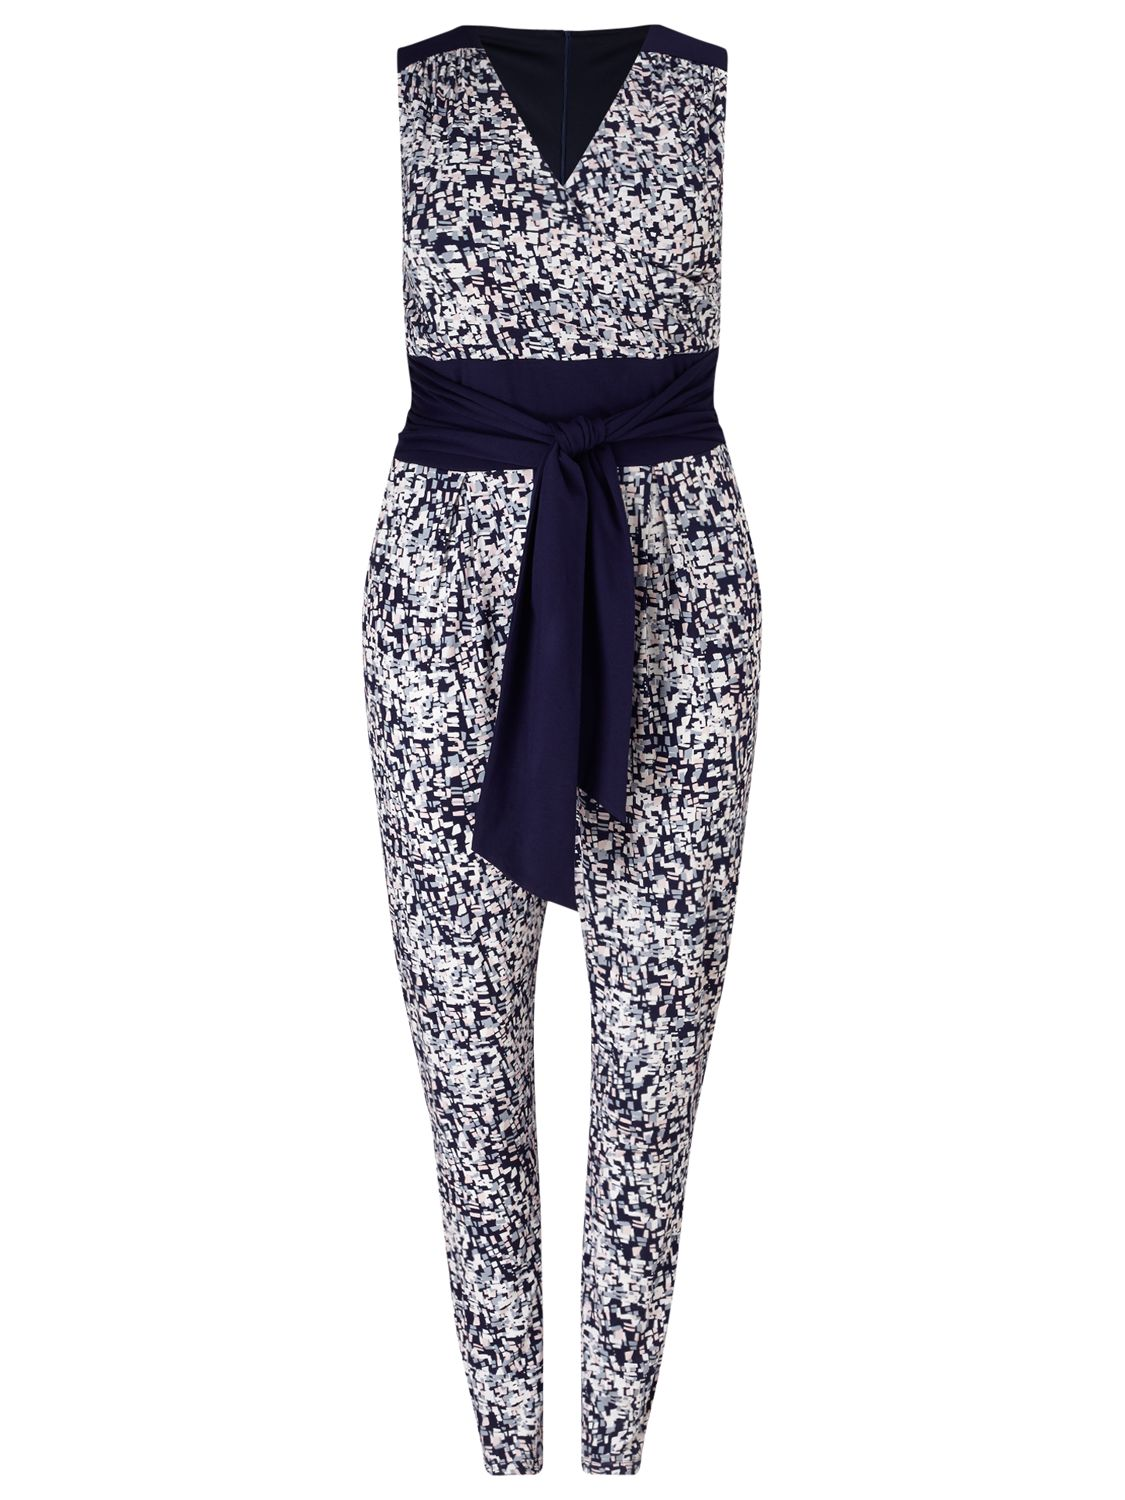 Studio 8 Studio 8 Miley Jumpsuit, Multi